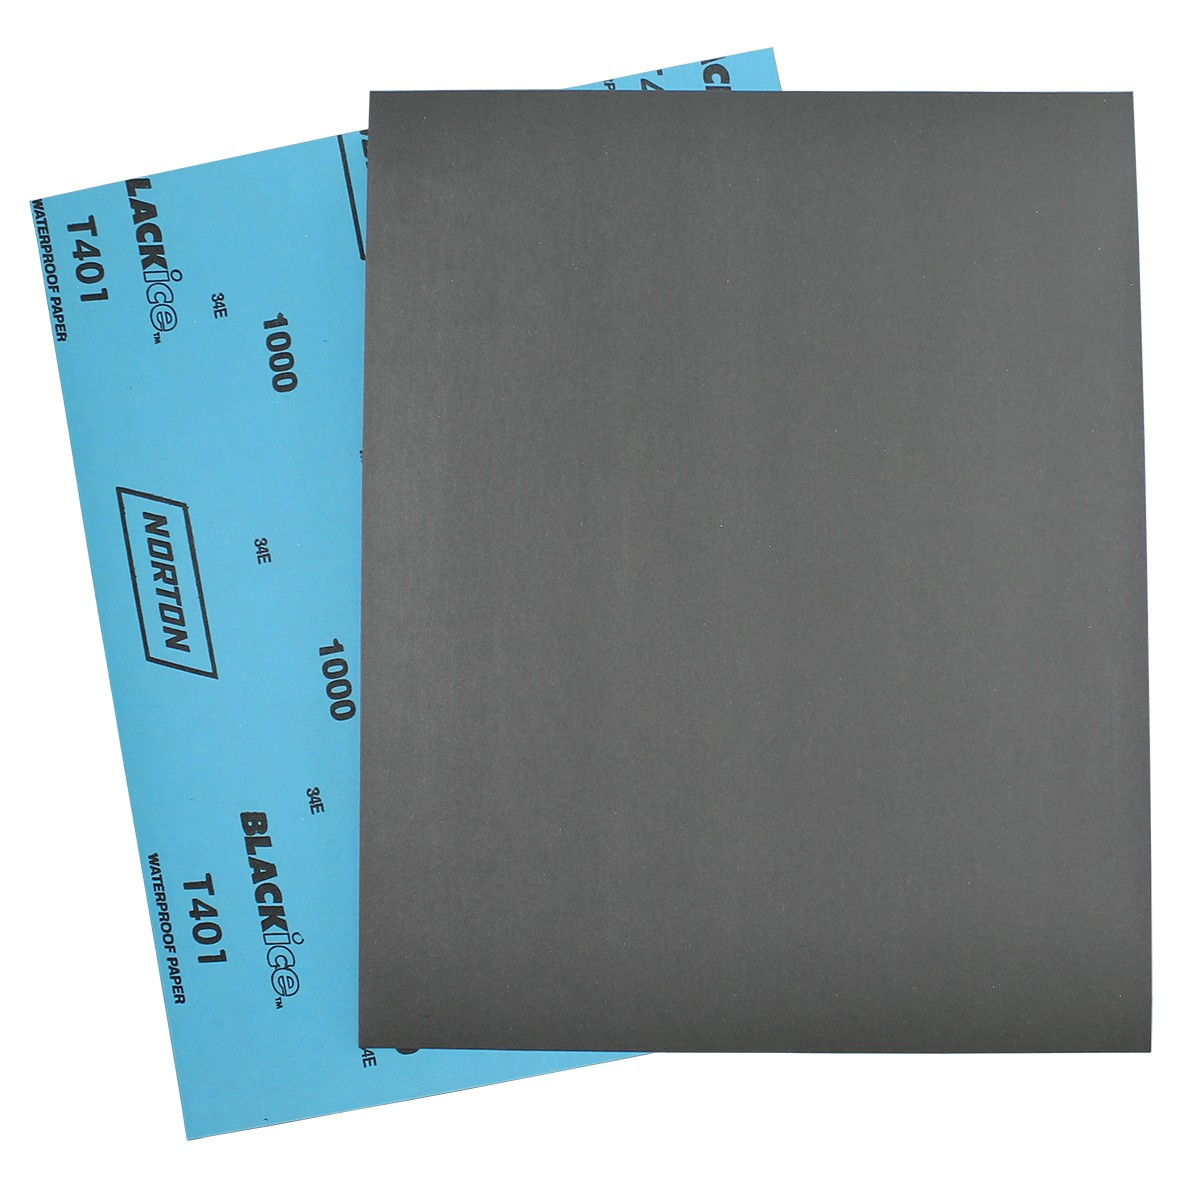 Norton Emery Polishing Paper - 1000 Grit